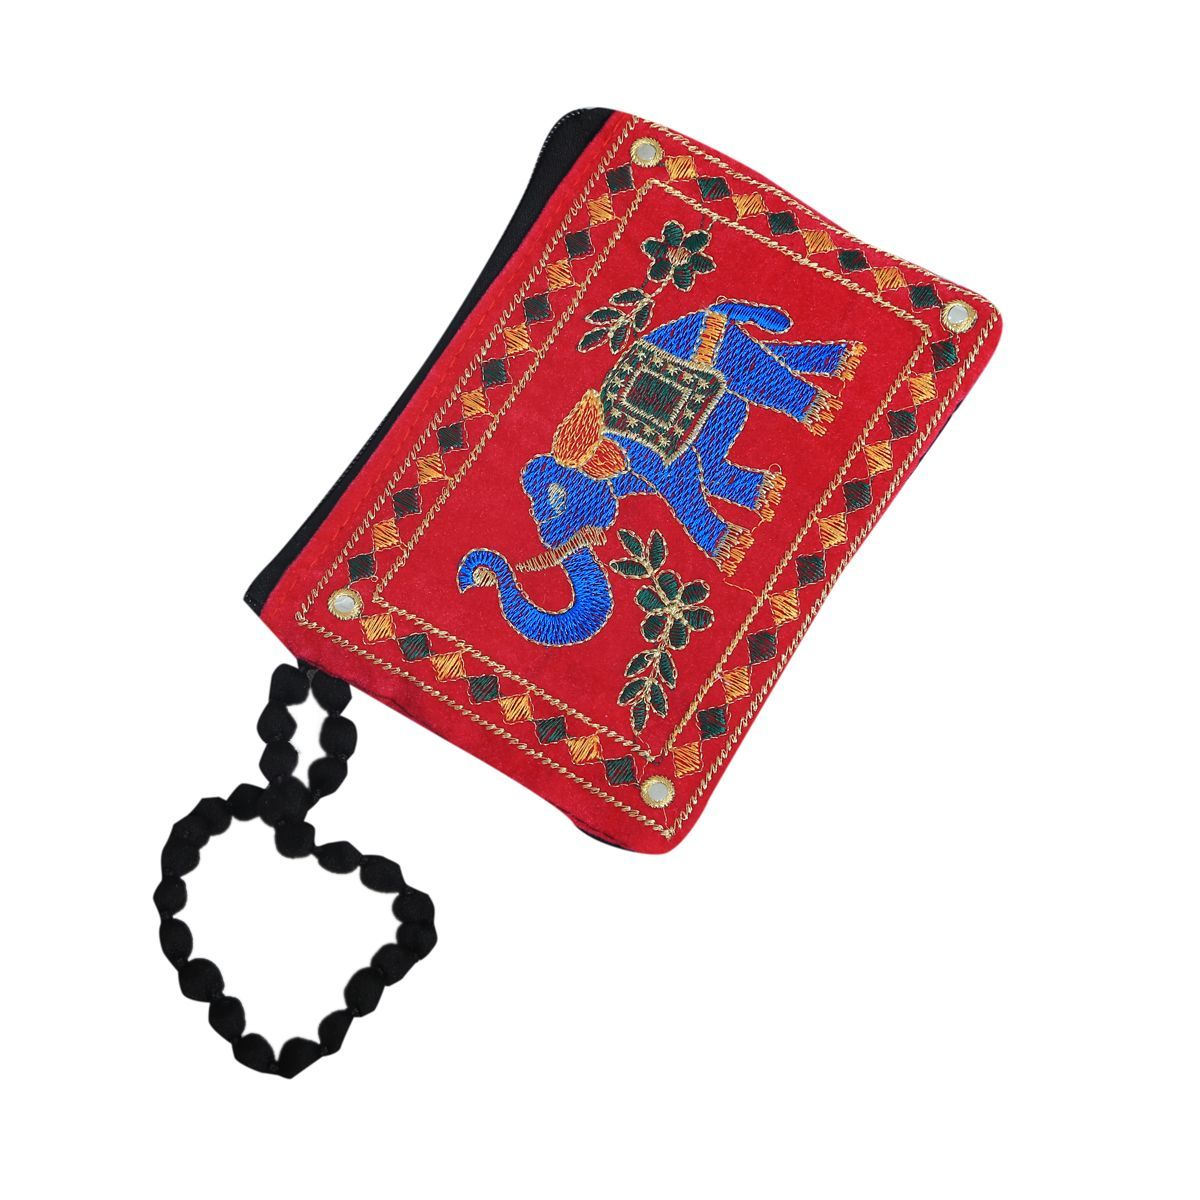 Kuber Industries™ Designer Mobile-Phone Pouch Cover With Hand Dori For Women: Rich Embroidery In Traditional Indian Style (Setof 3) - BG71